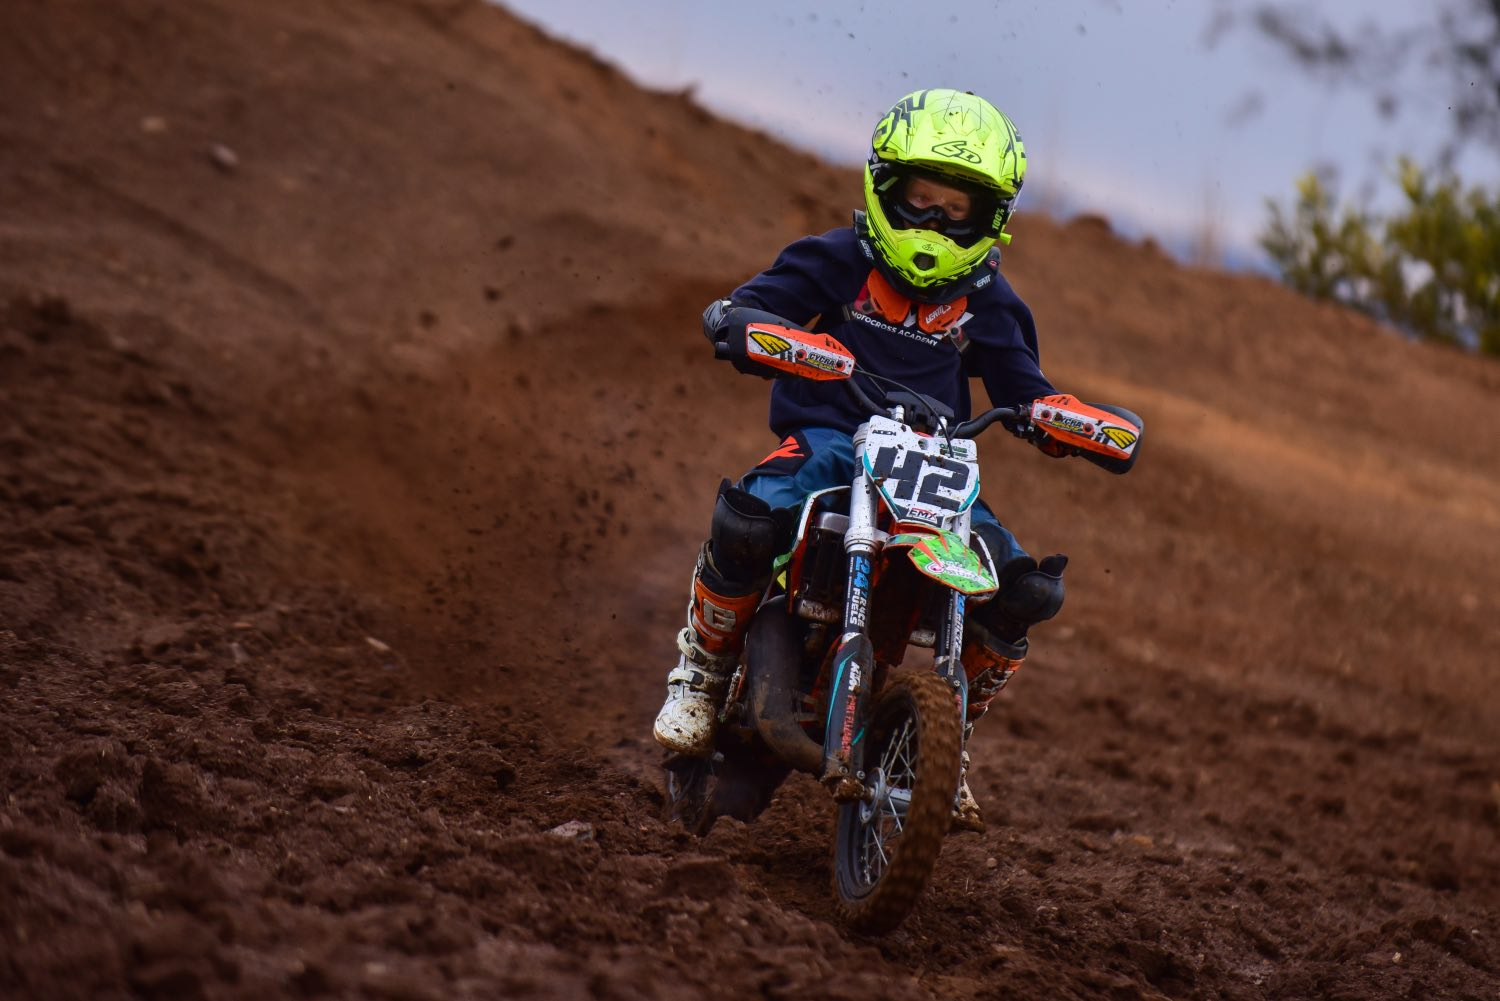 Aiden Retief racing the fifth round of the 2021 South African National Motocross Championship